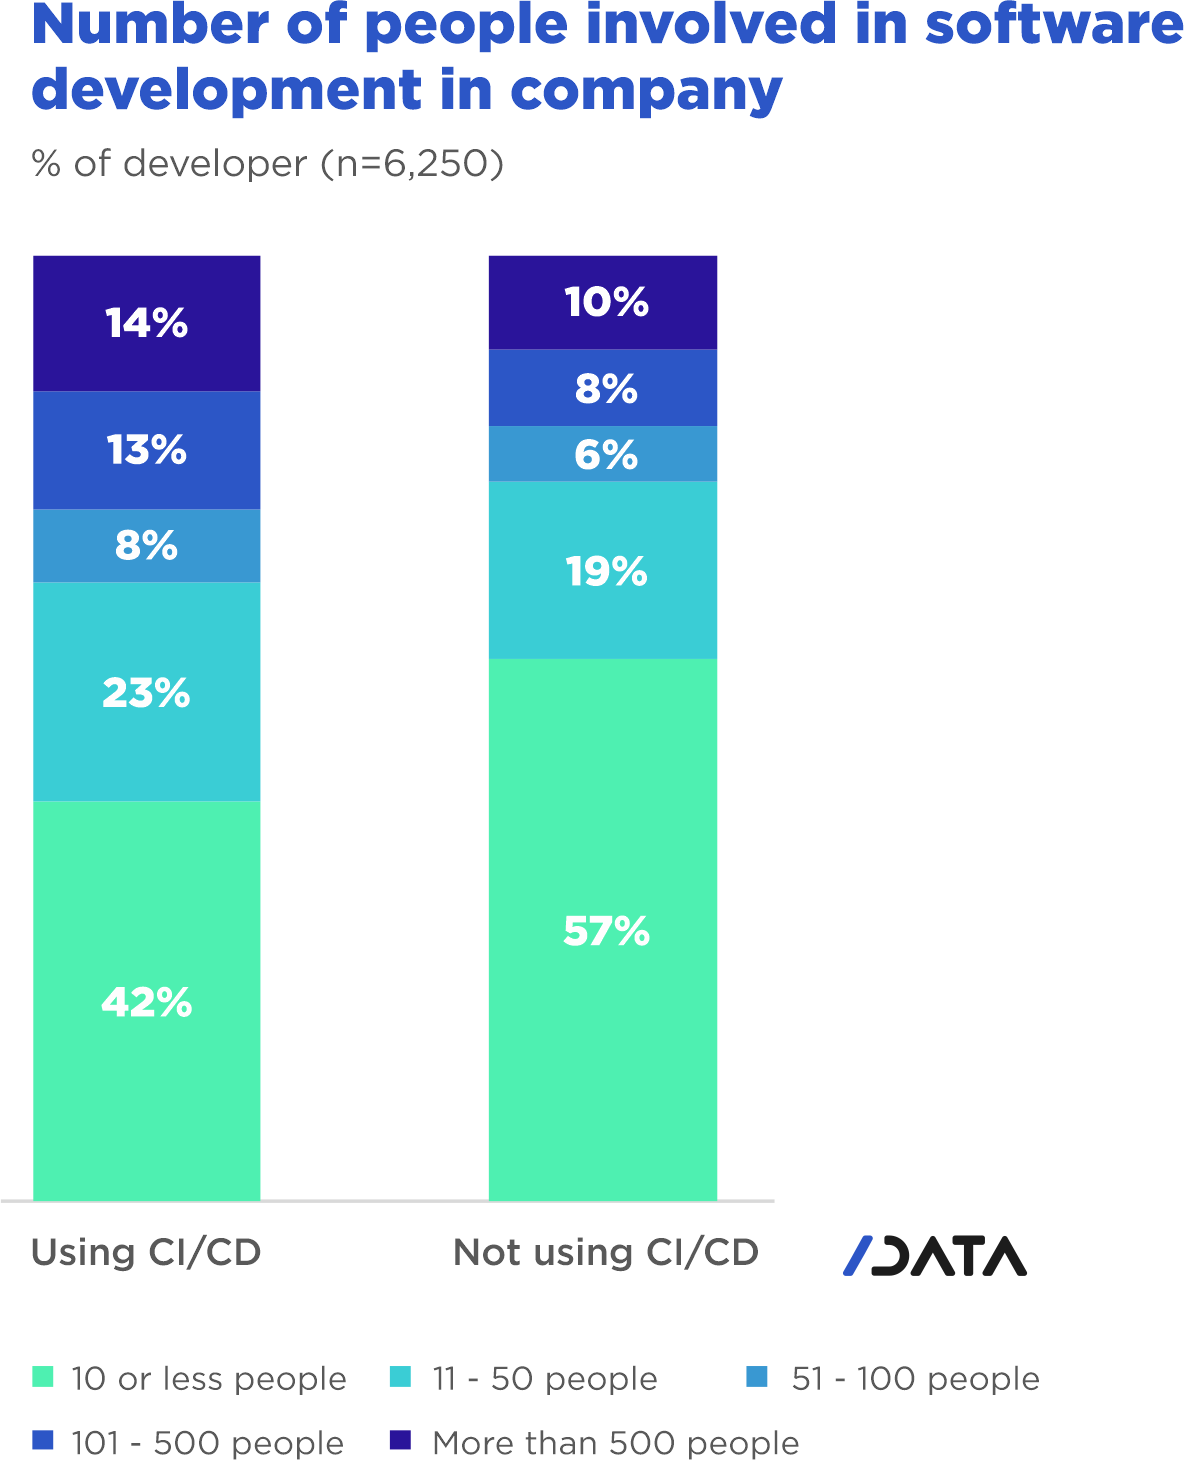 DevOps CI/CD usage trends - Number of people involved in software development in company